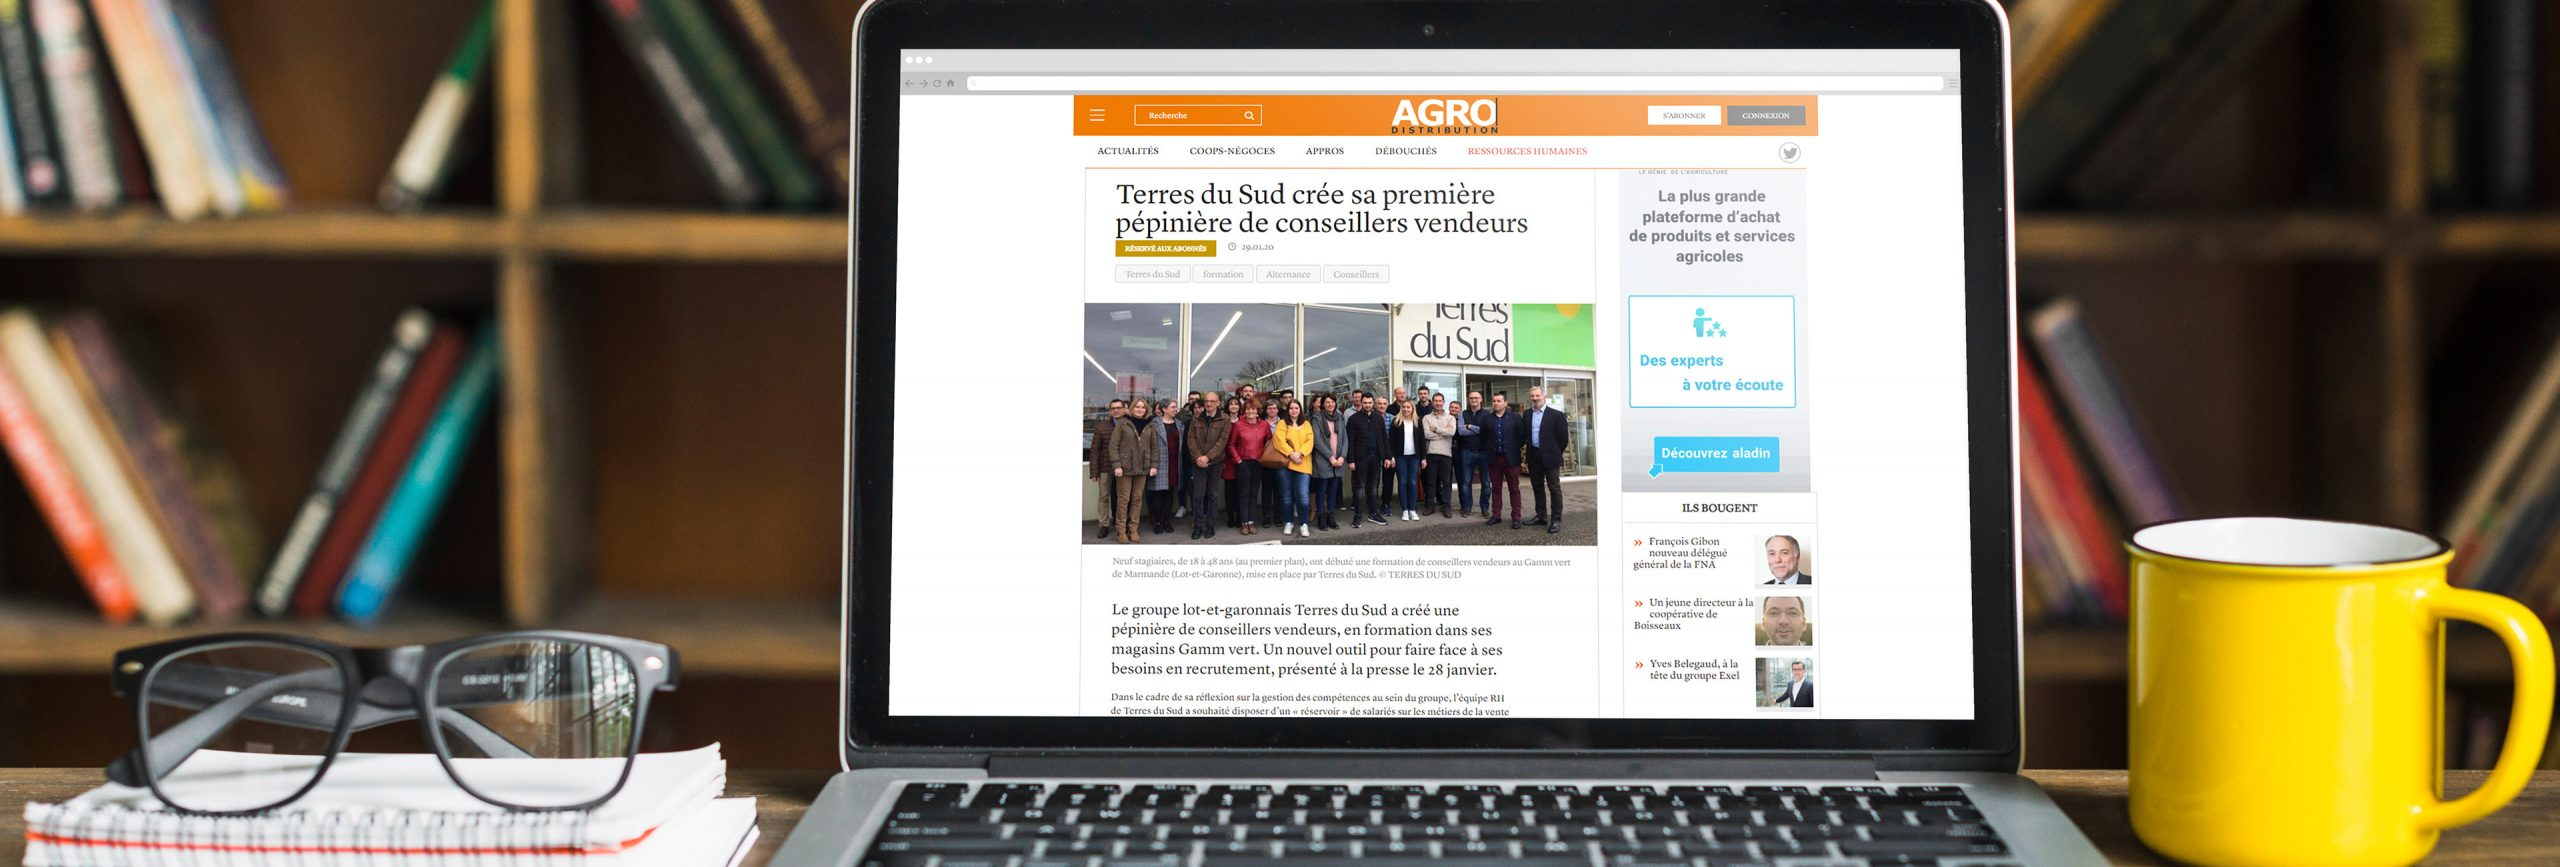 Article Agro distribution Terres du Sud